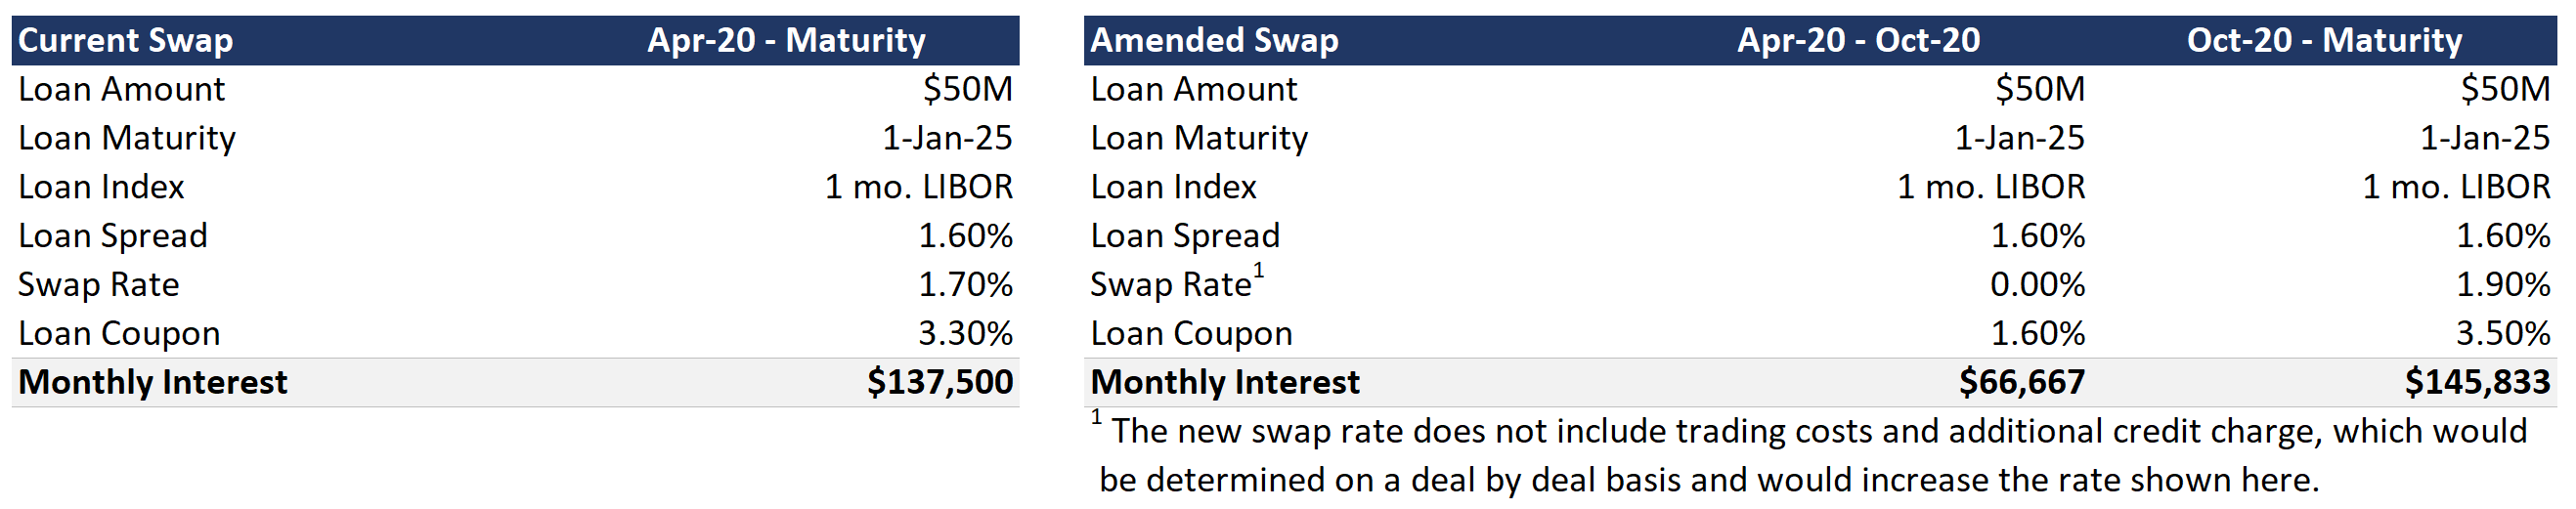 Swap restructure without loan forbearance